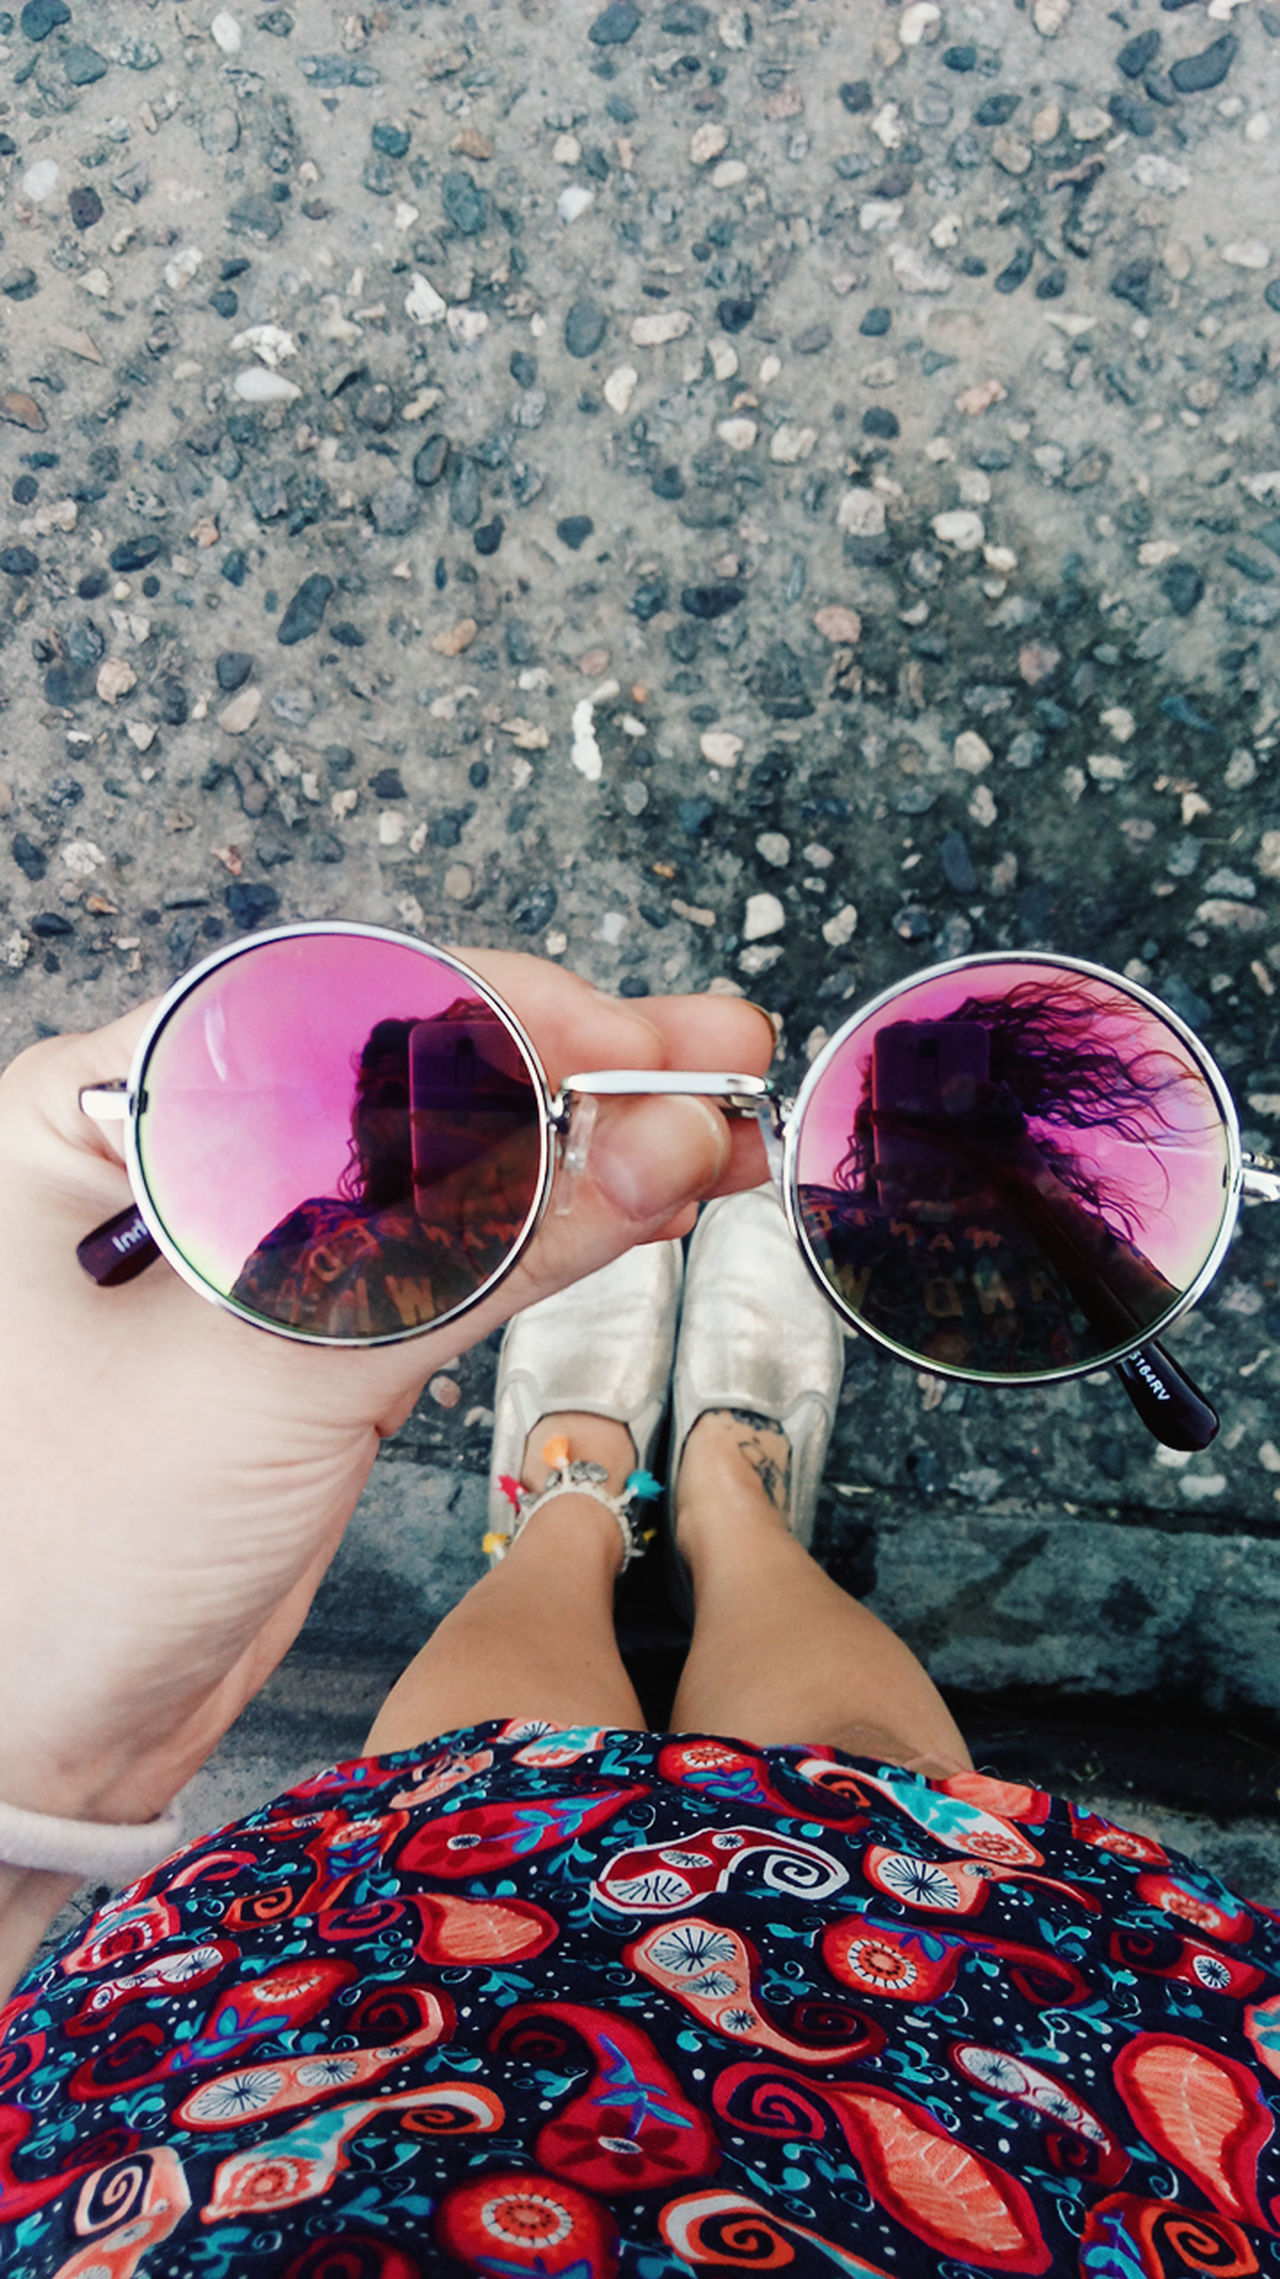 High Angle View Summer Vacations Day Light Sky Women ExpressYourself Bloggerstyle Pink Blogger Lifestyles Style And Fashion Styleblogger Outfit Style Sunglasses Sunglasses Reflection Sun Gold Colorful Color Explosion Color Of Life Colors Millennial Pink